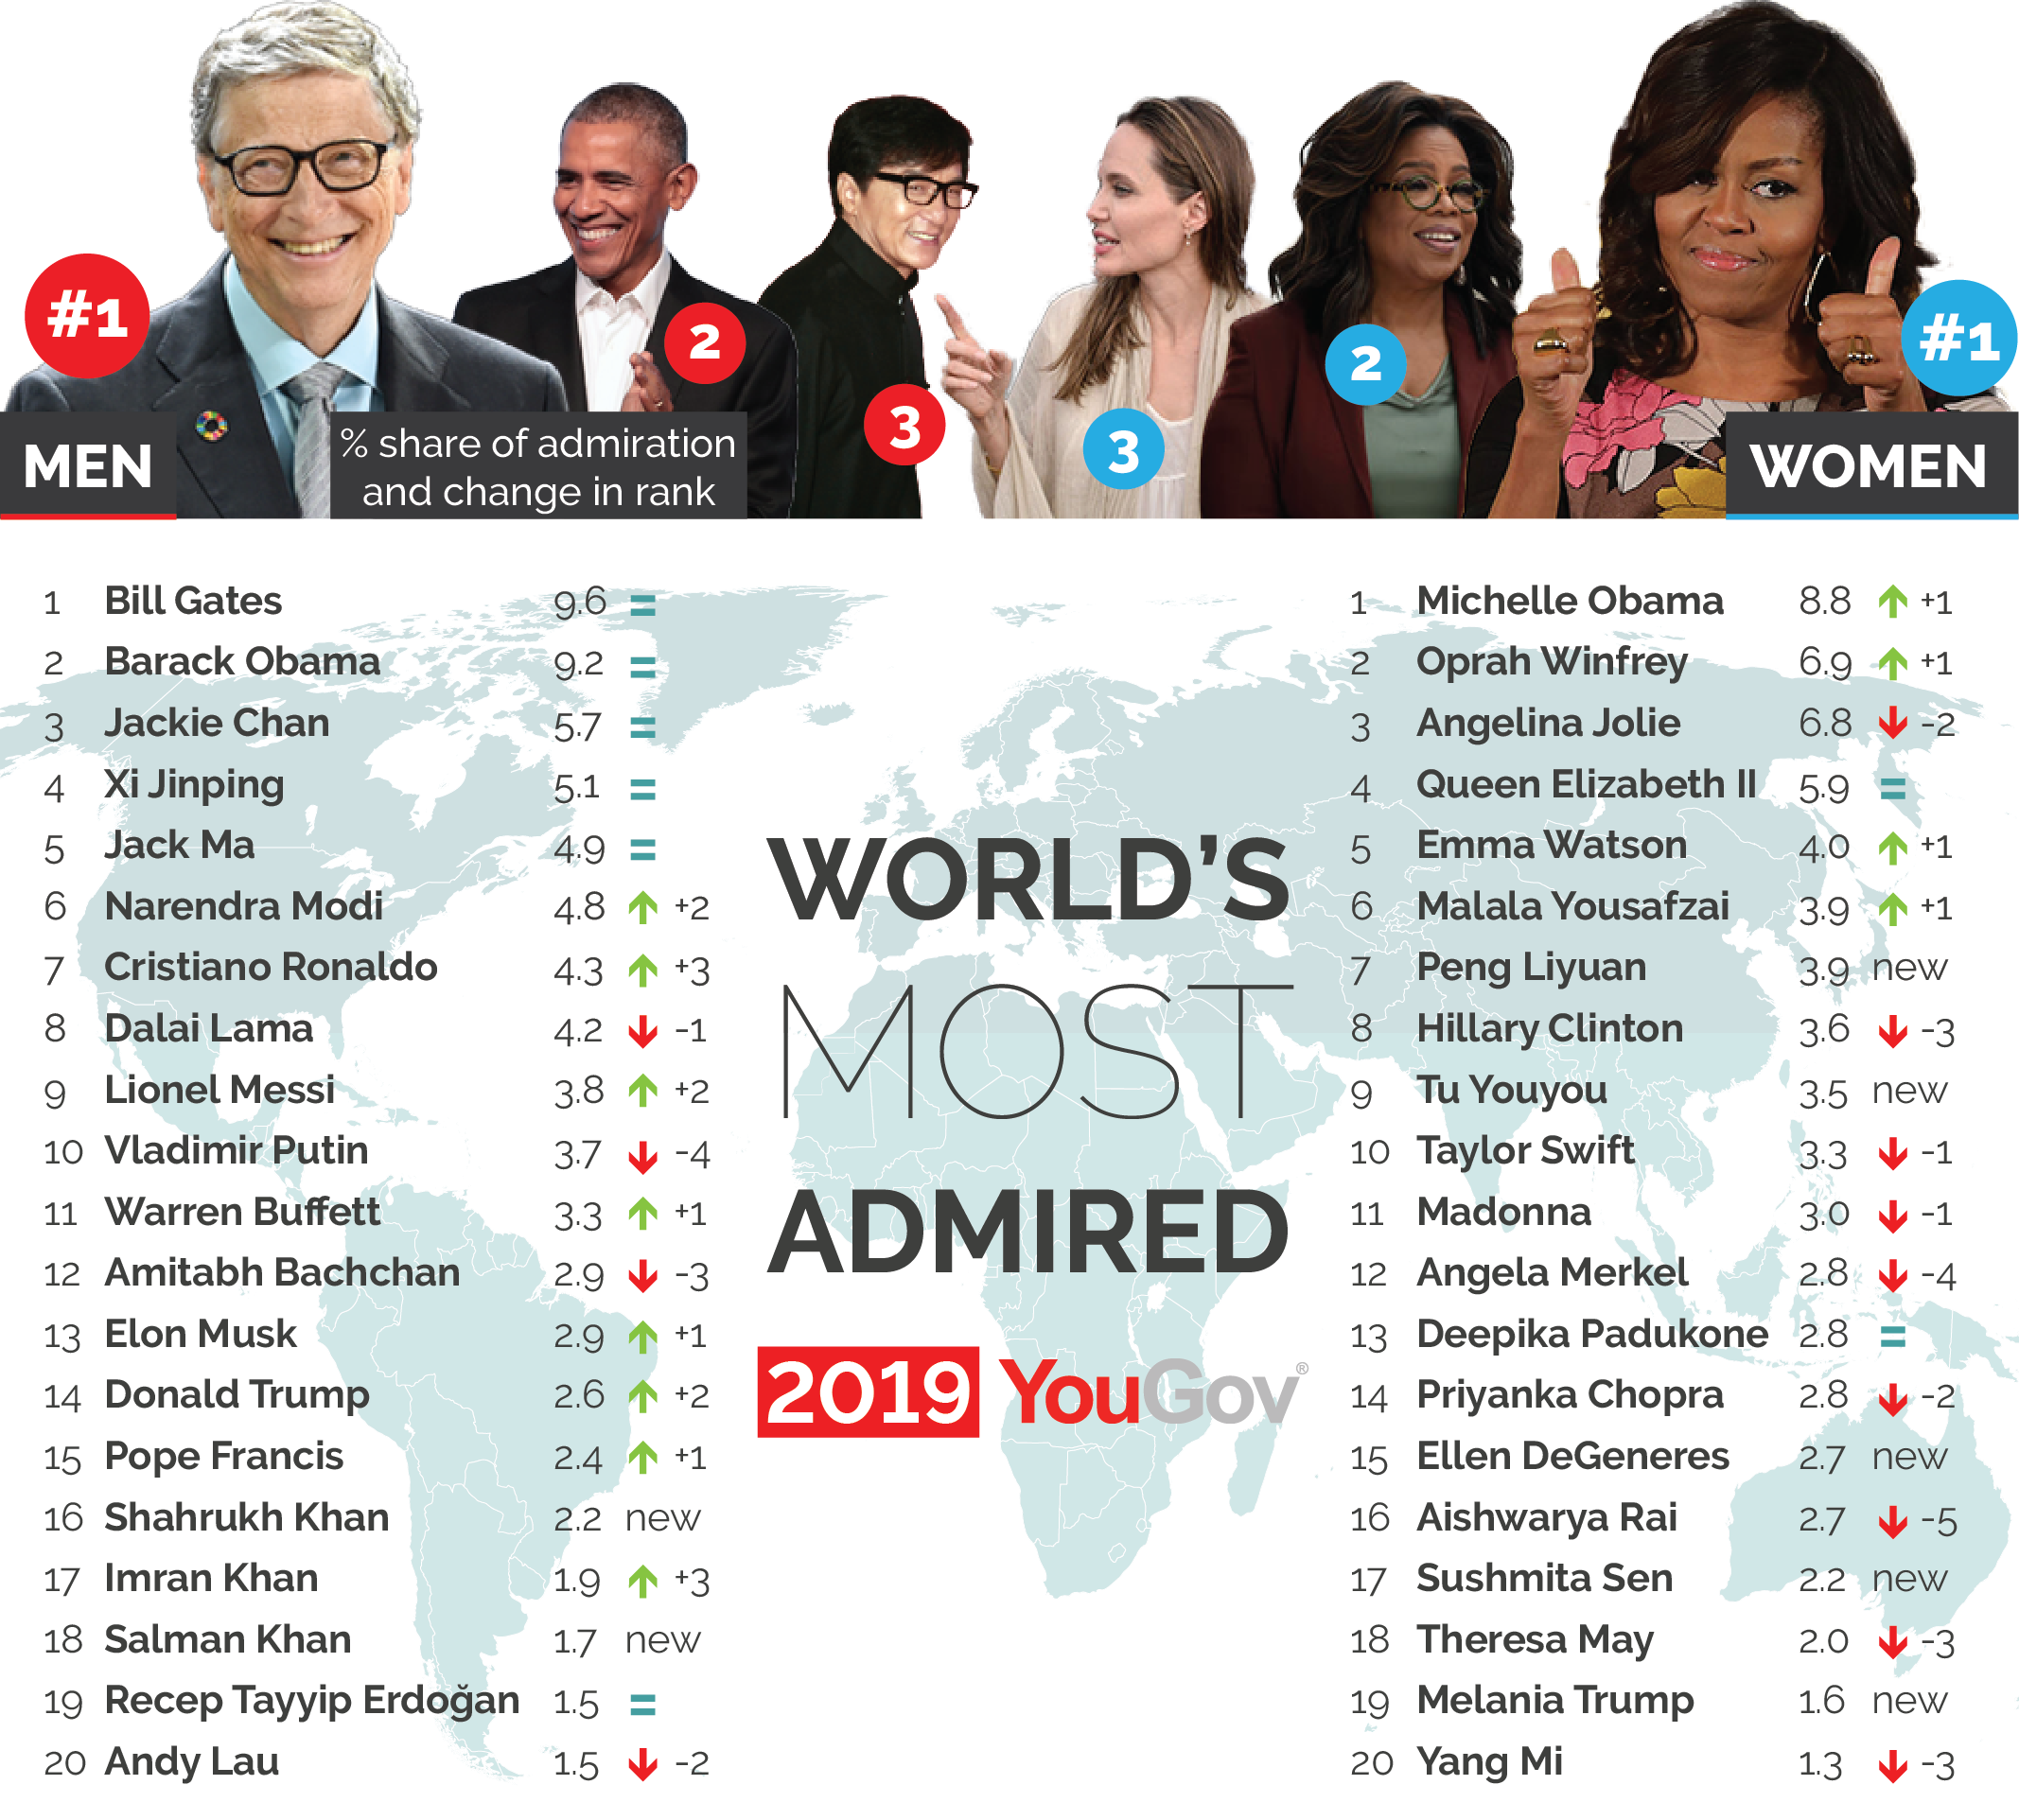 World's most admired